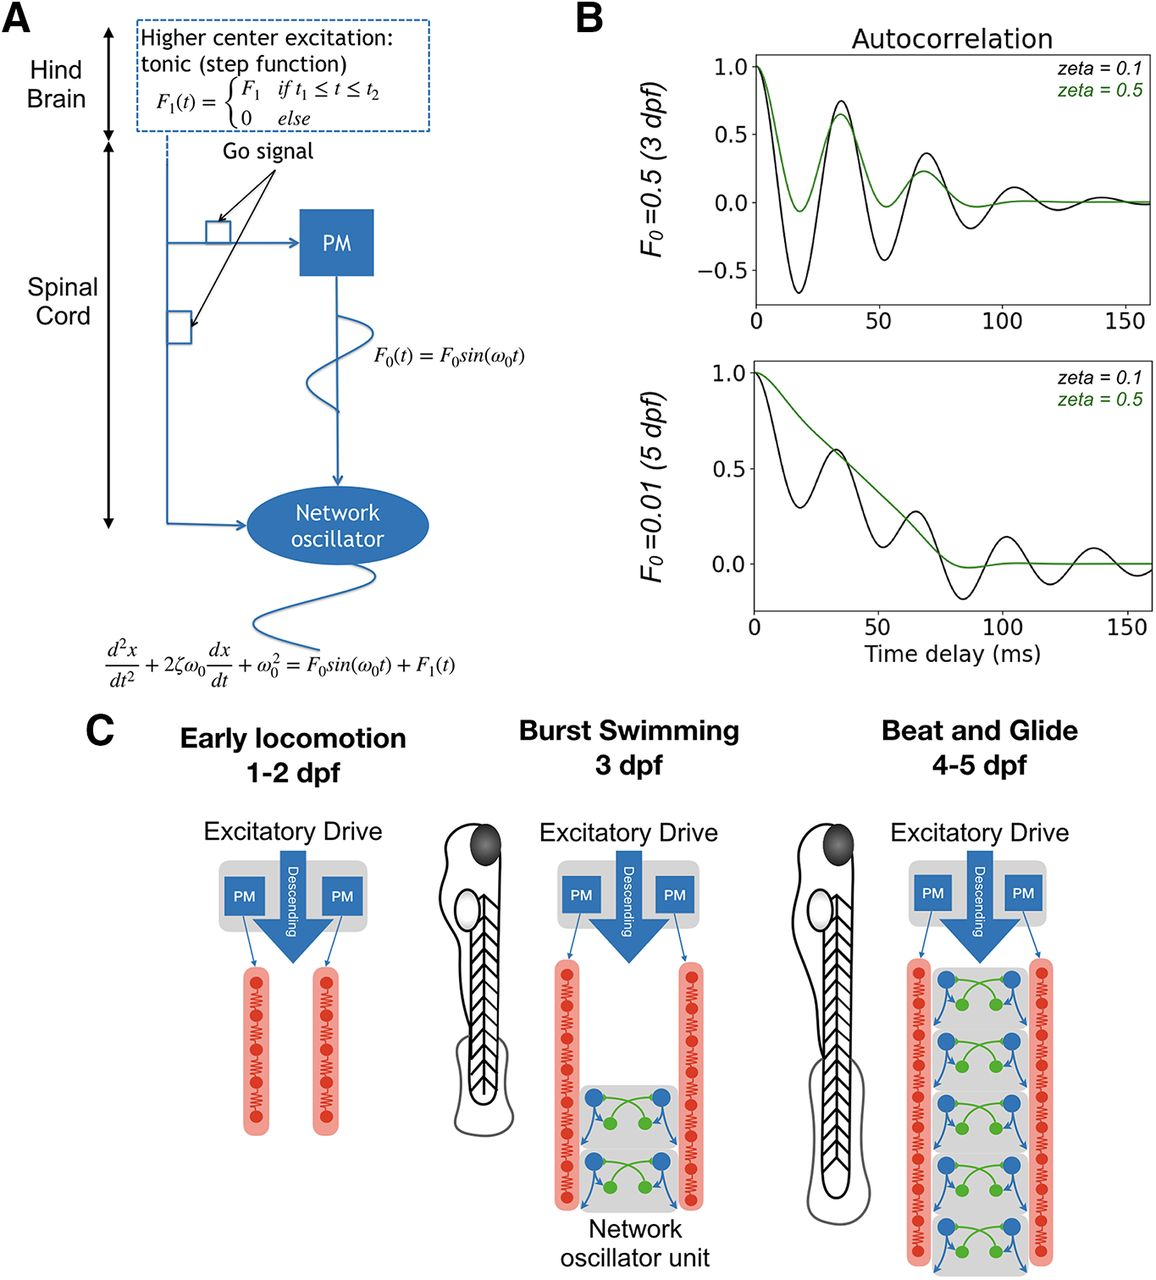 Spatiotemporal Transition In The Role Of Synaptic Inhibition To The Tail Beat Rhythm Of Developing Larval Zebrafish Eneuro